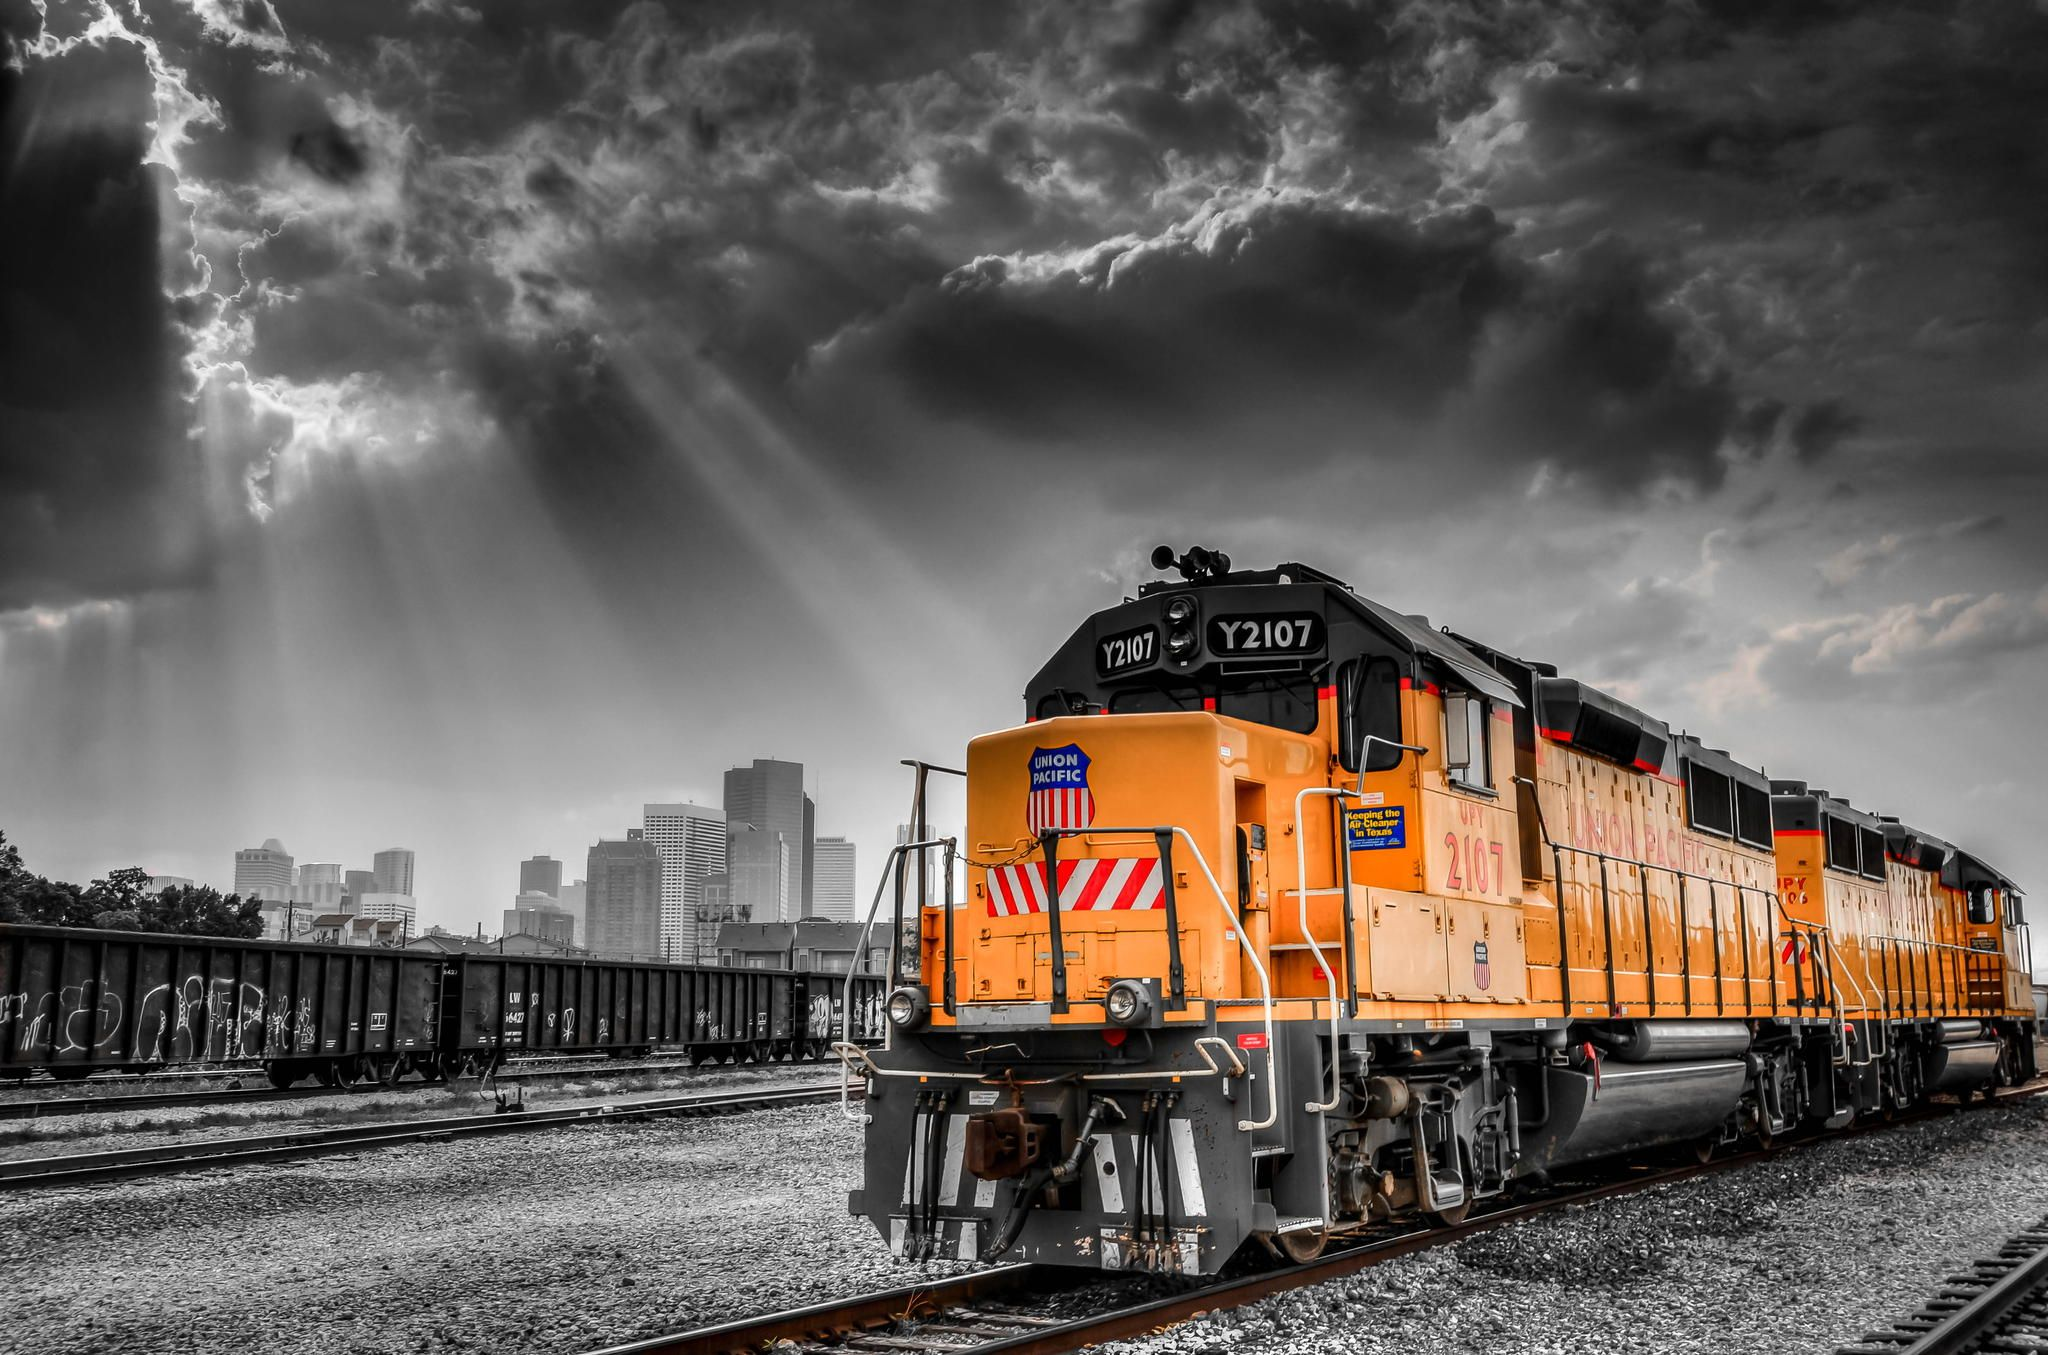 Light-rail by Brian Rogers on 500px